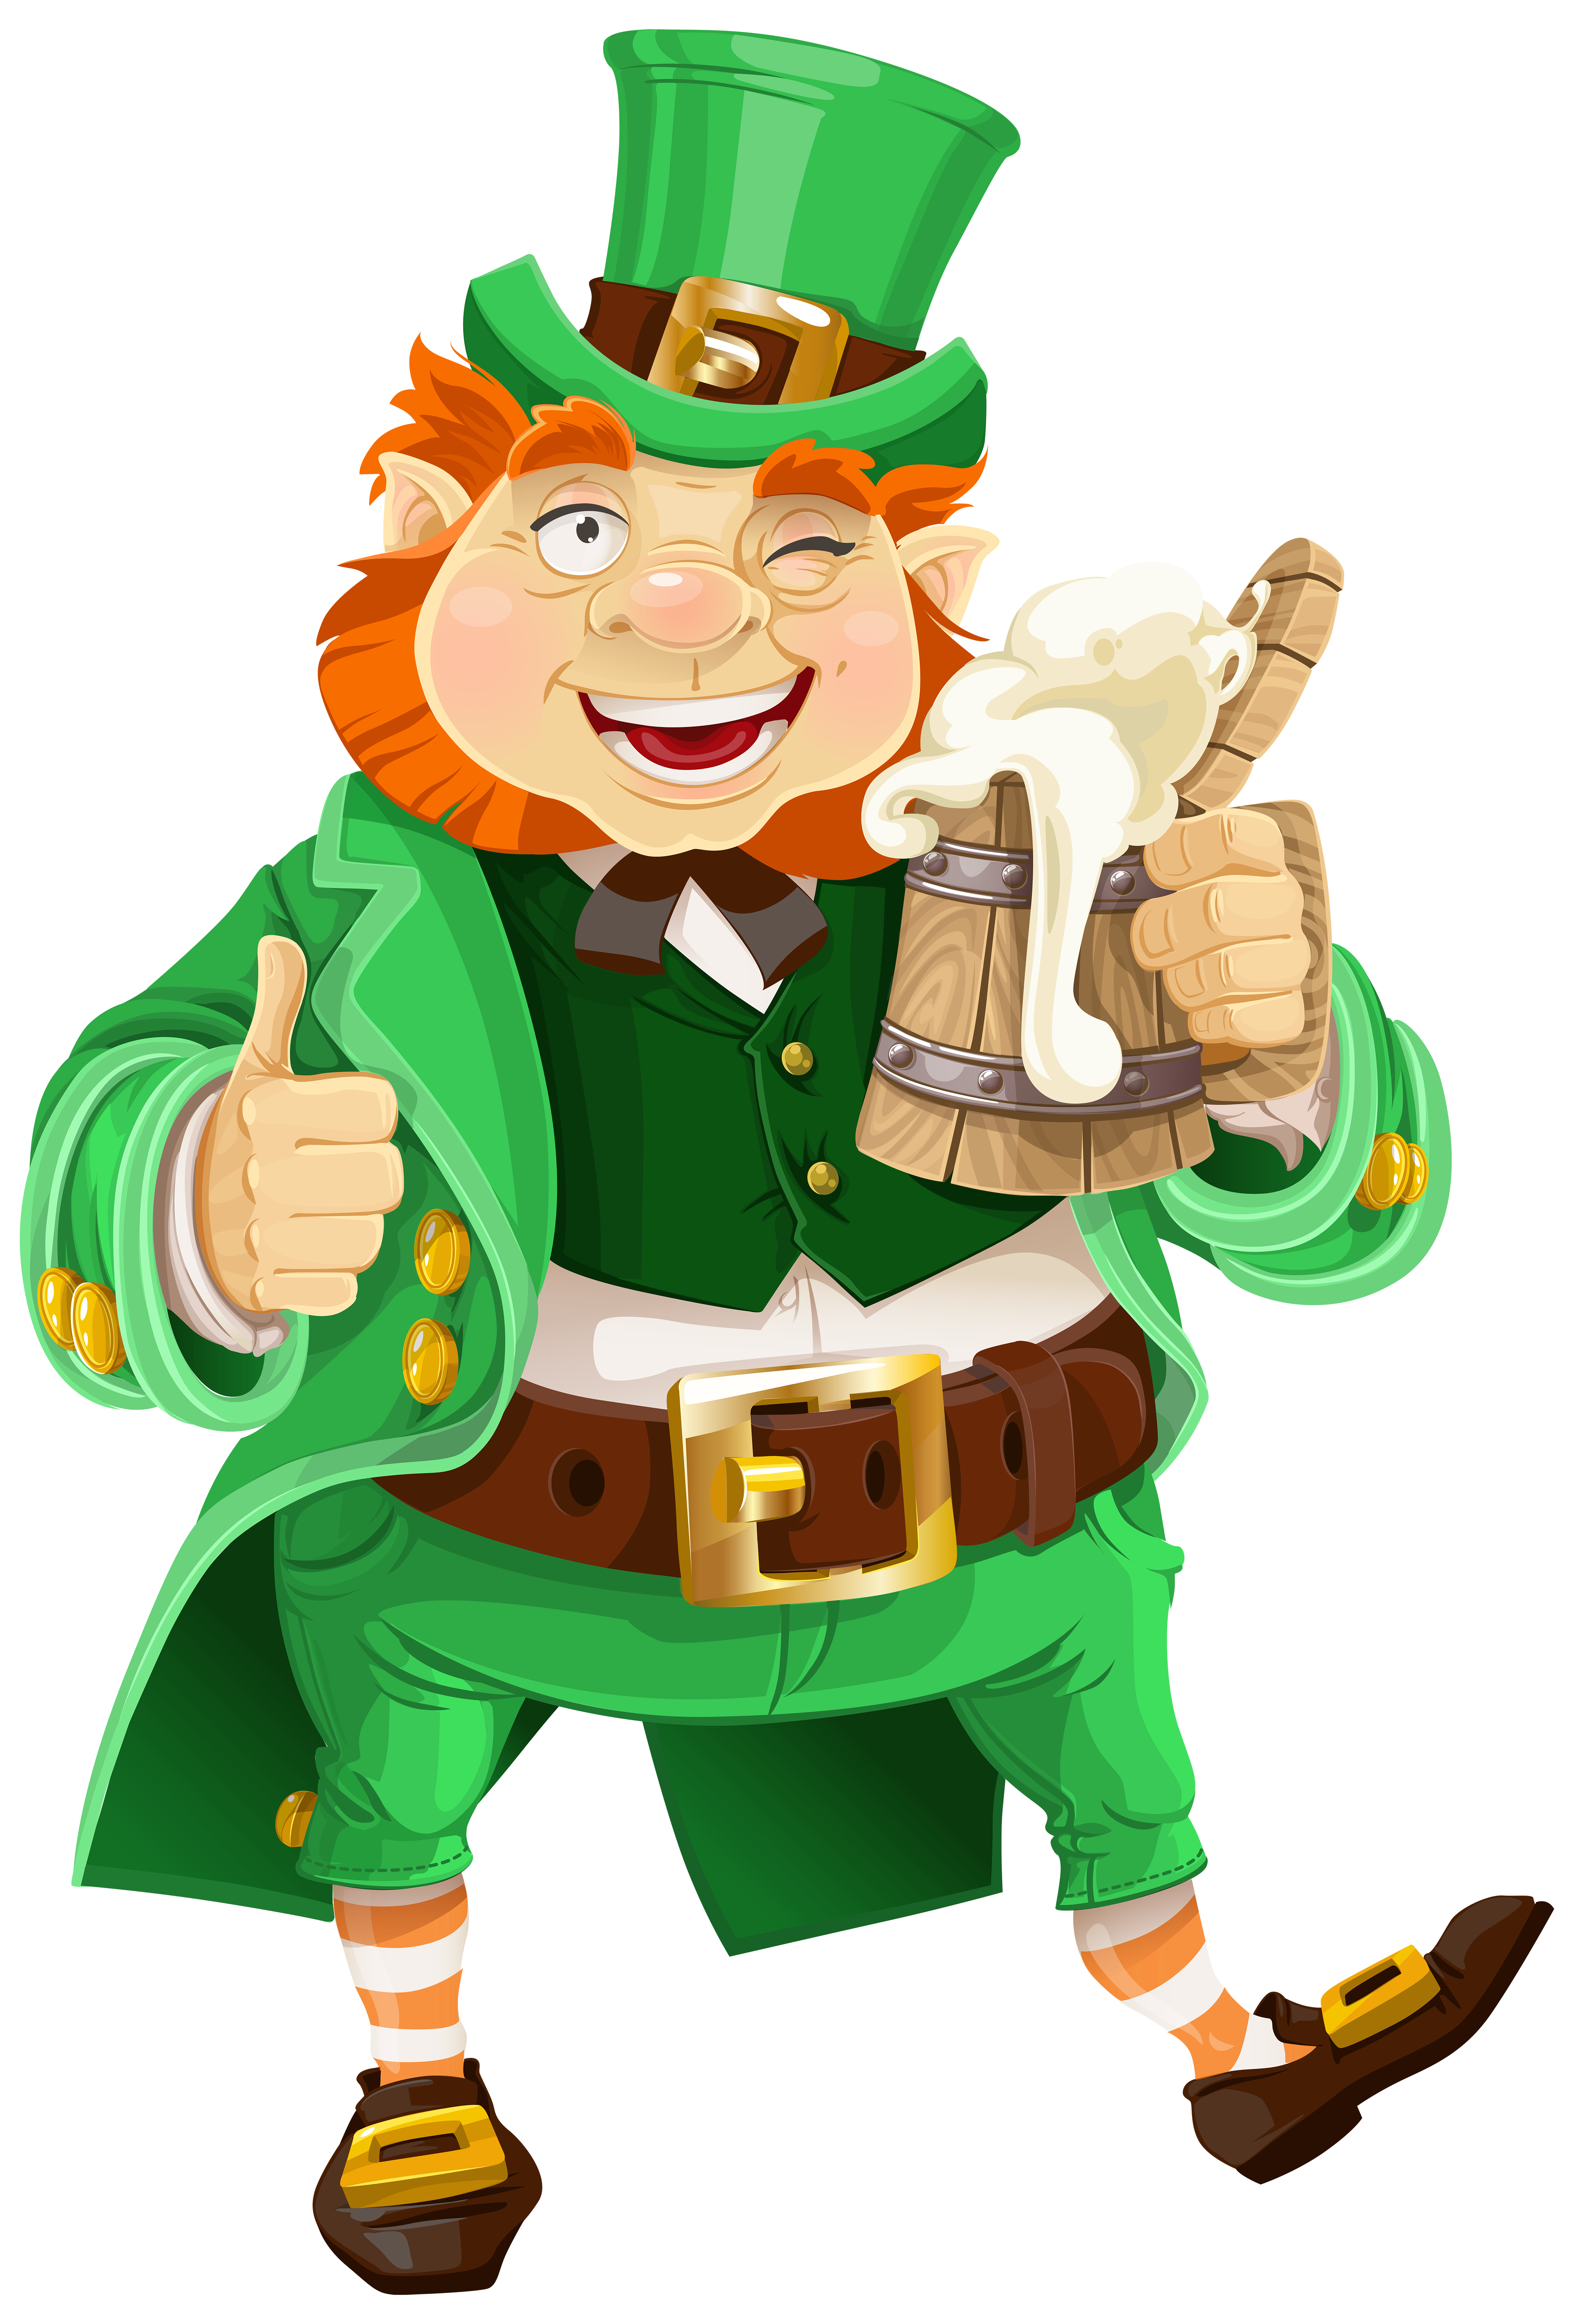 picture royalty free St patricks day with. Leprechaun clipart cartoon.